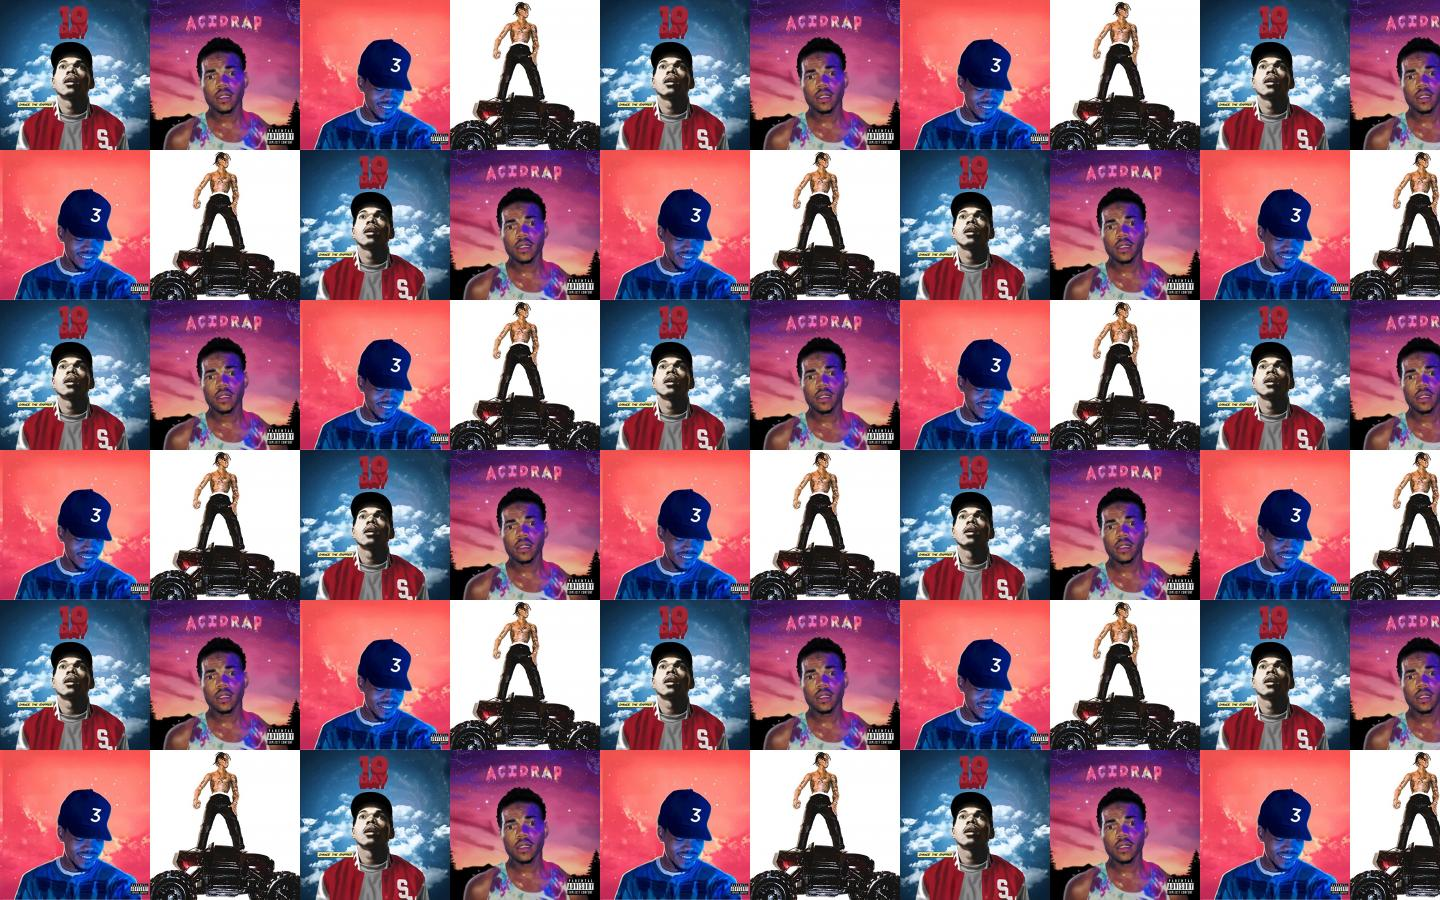 1440x900 Chance Rapper 10 Day Acid Rap Colouring Wallpaper « Tiled ...